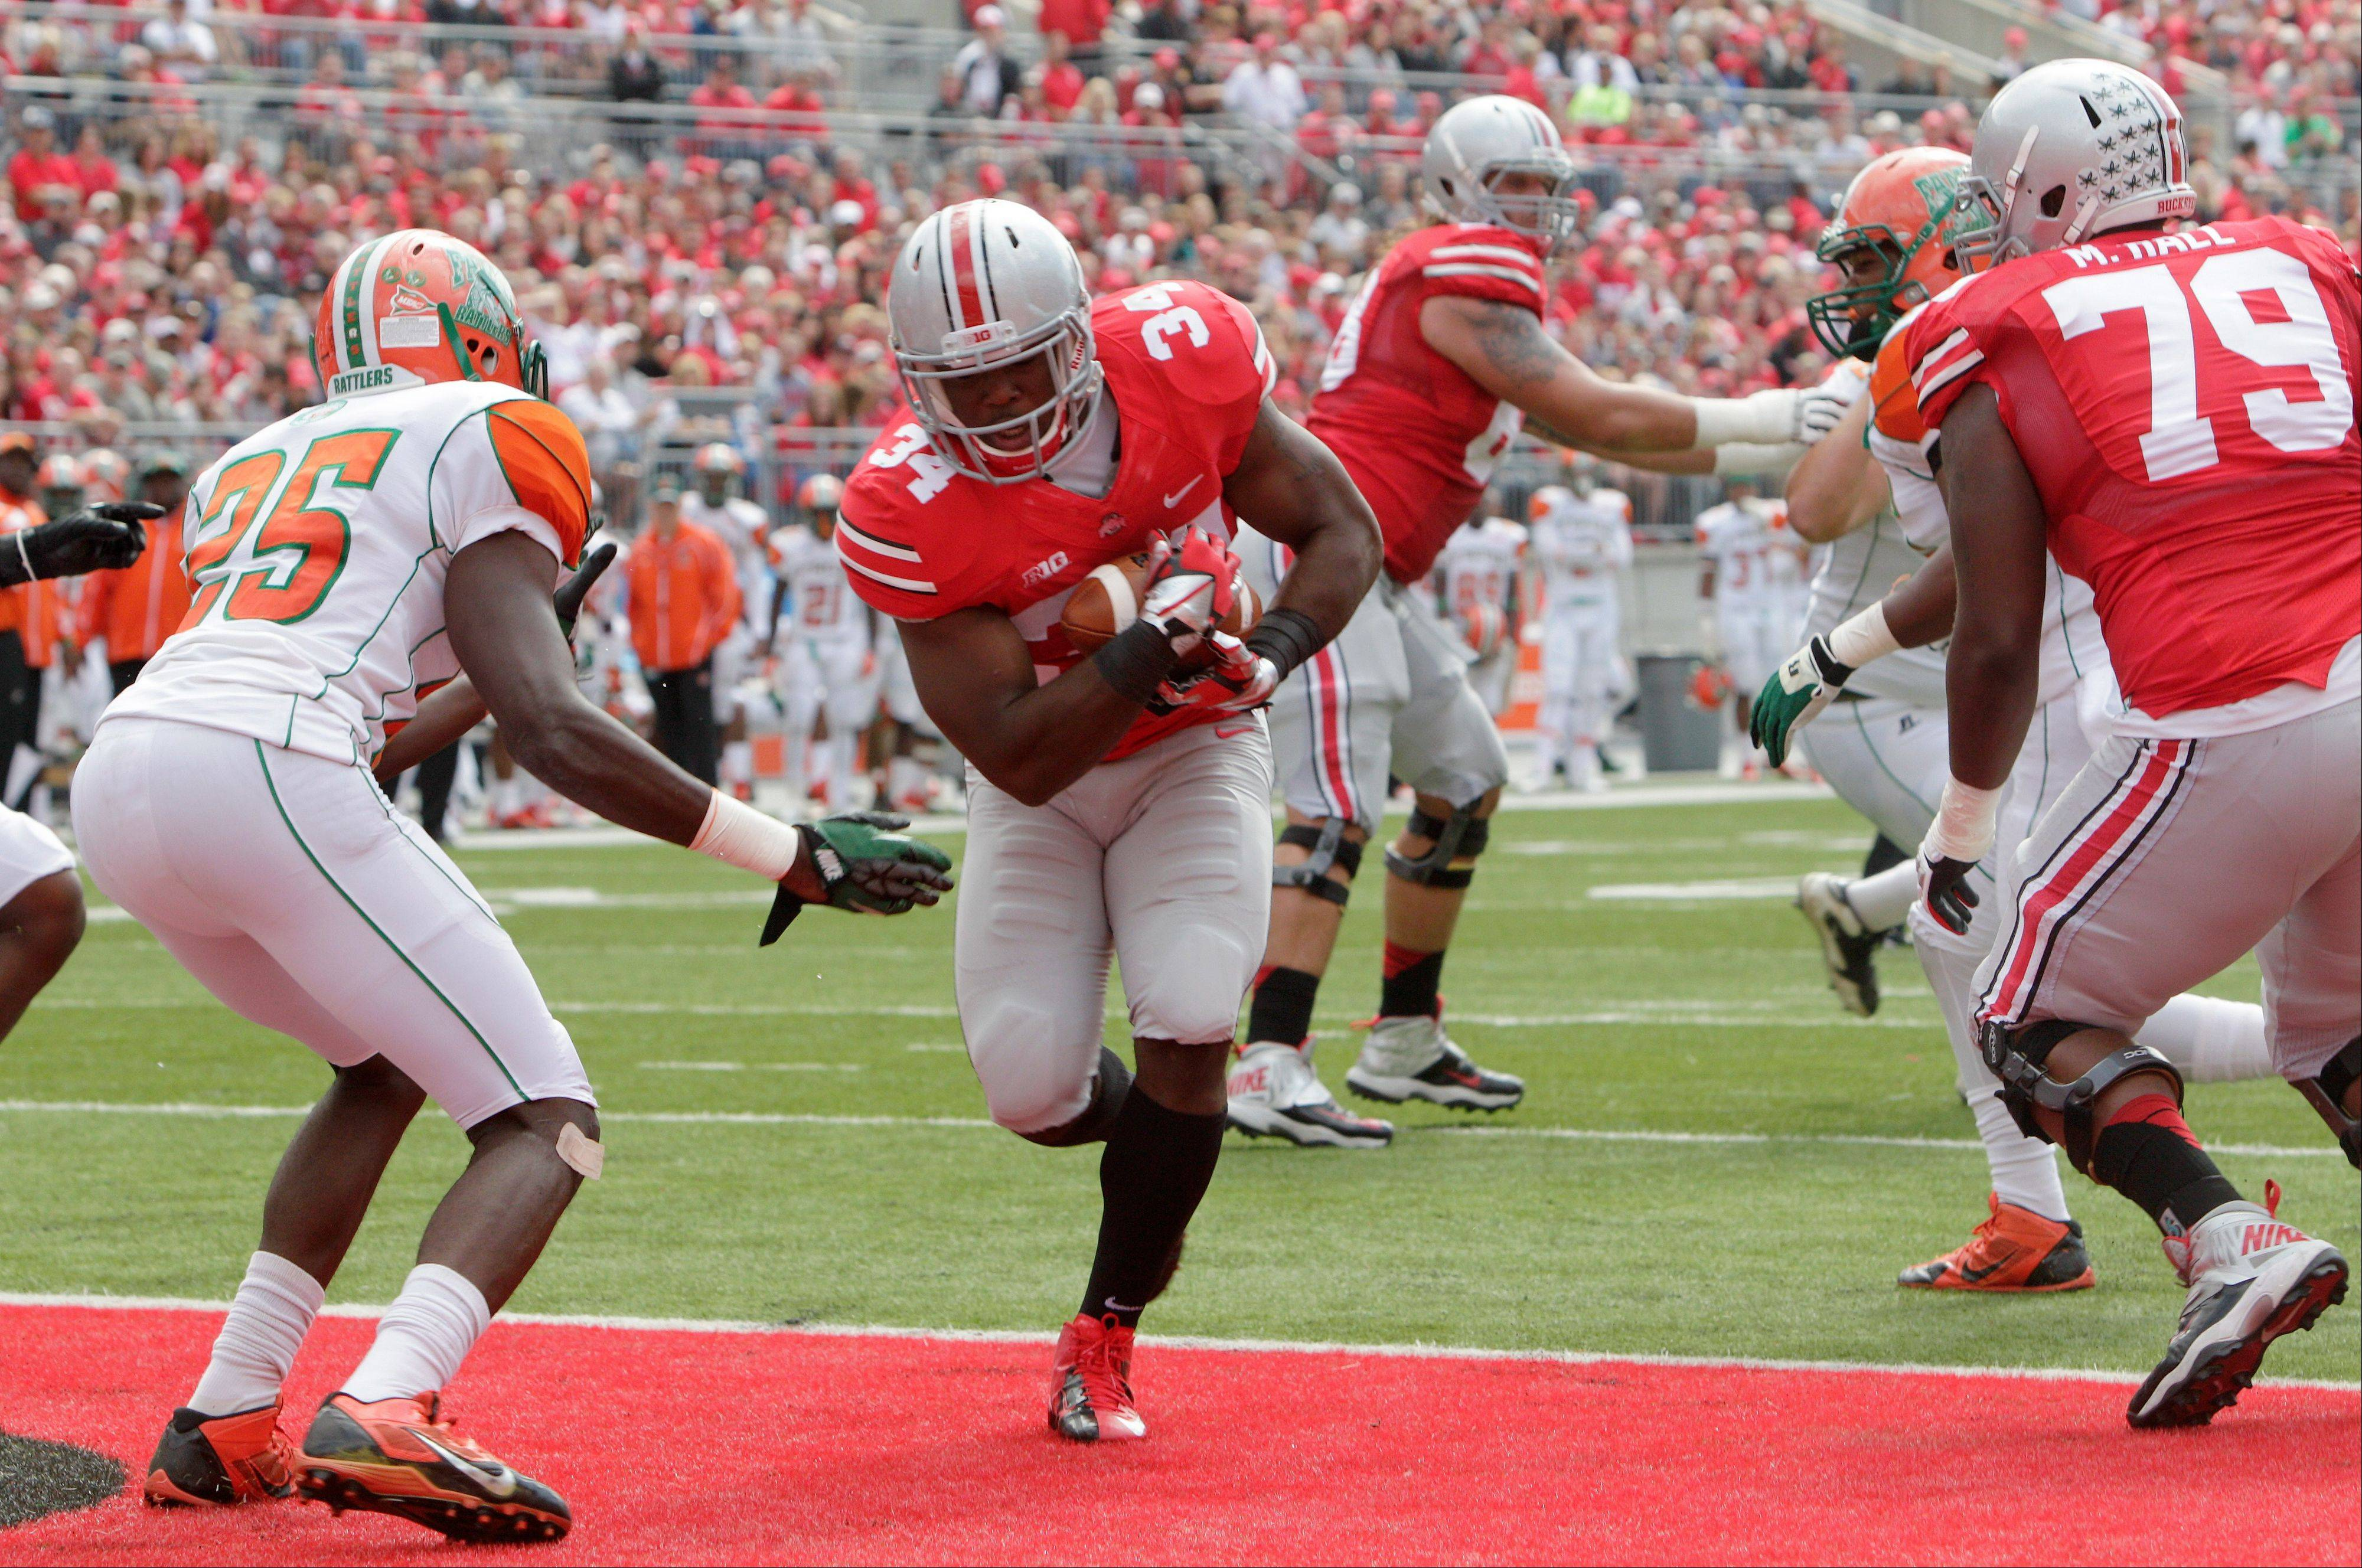 Ohio State running back Carlos Hyde, center, scores a touchdown in front of Florida A&M safety John Oye Ojo (25) during the first quarter of an NCAA college football game Saturday, Sept. 21, 2013, in Columbus, Ohio.